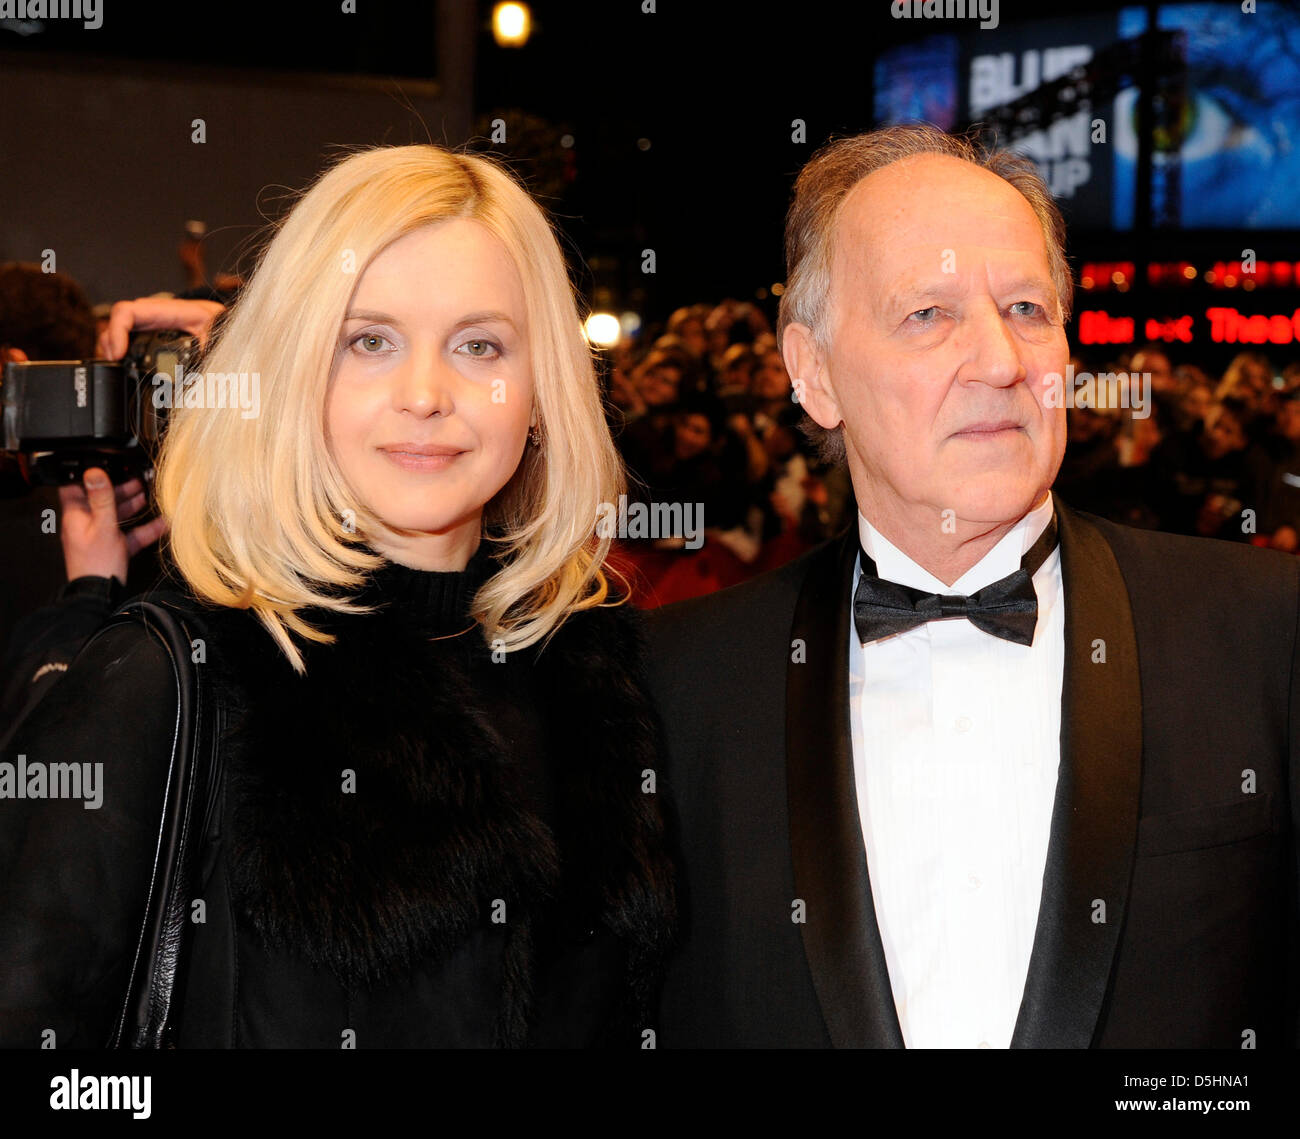 Jury president Werner Herzog and his wife Lena arrive for ...